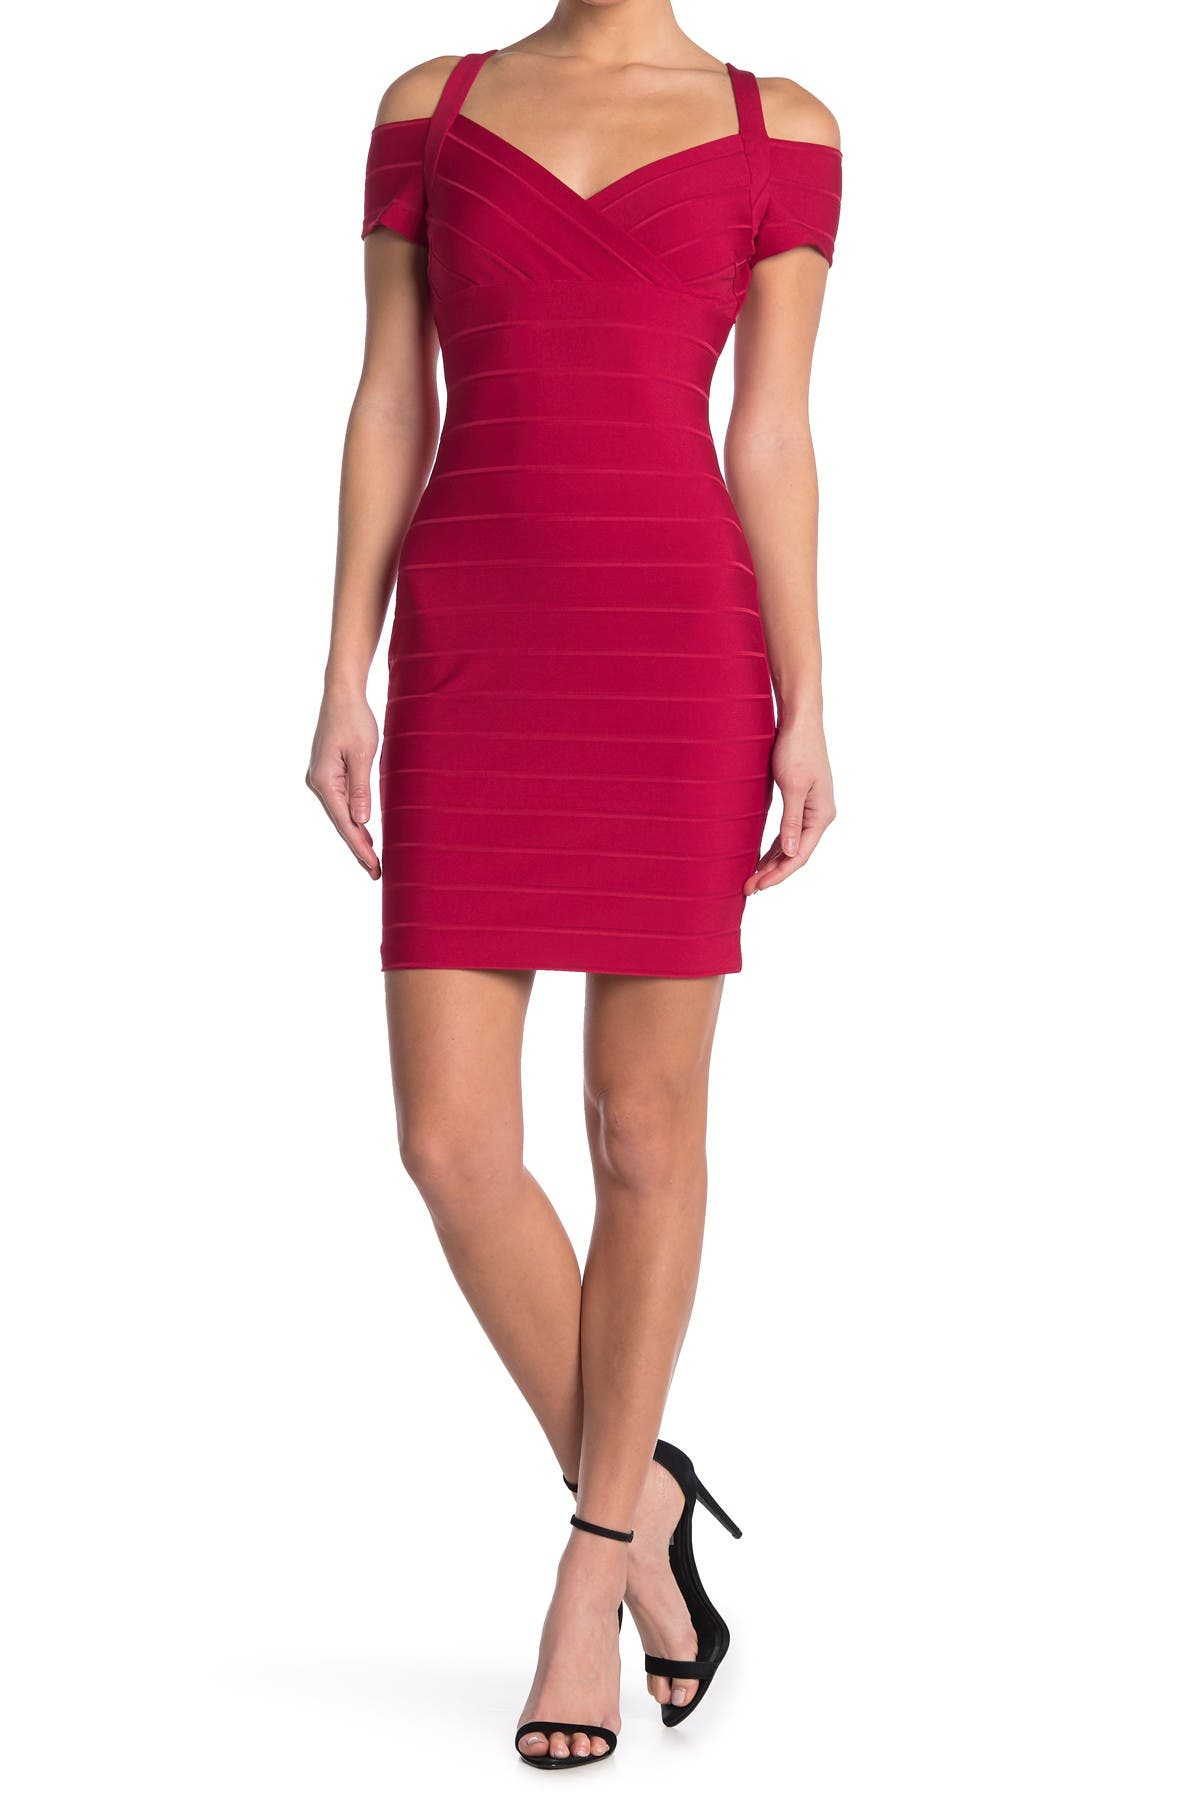 Image of GUESS Cold Shoulder Bandage Dress